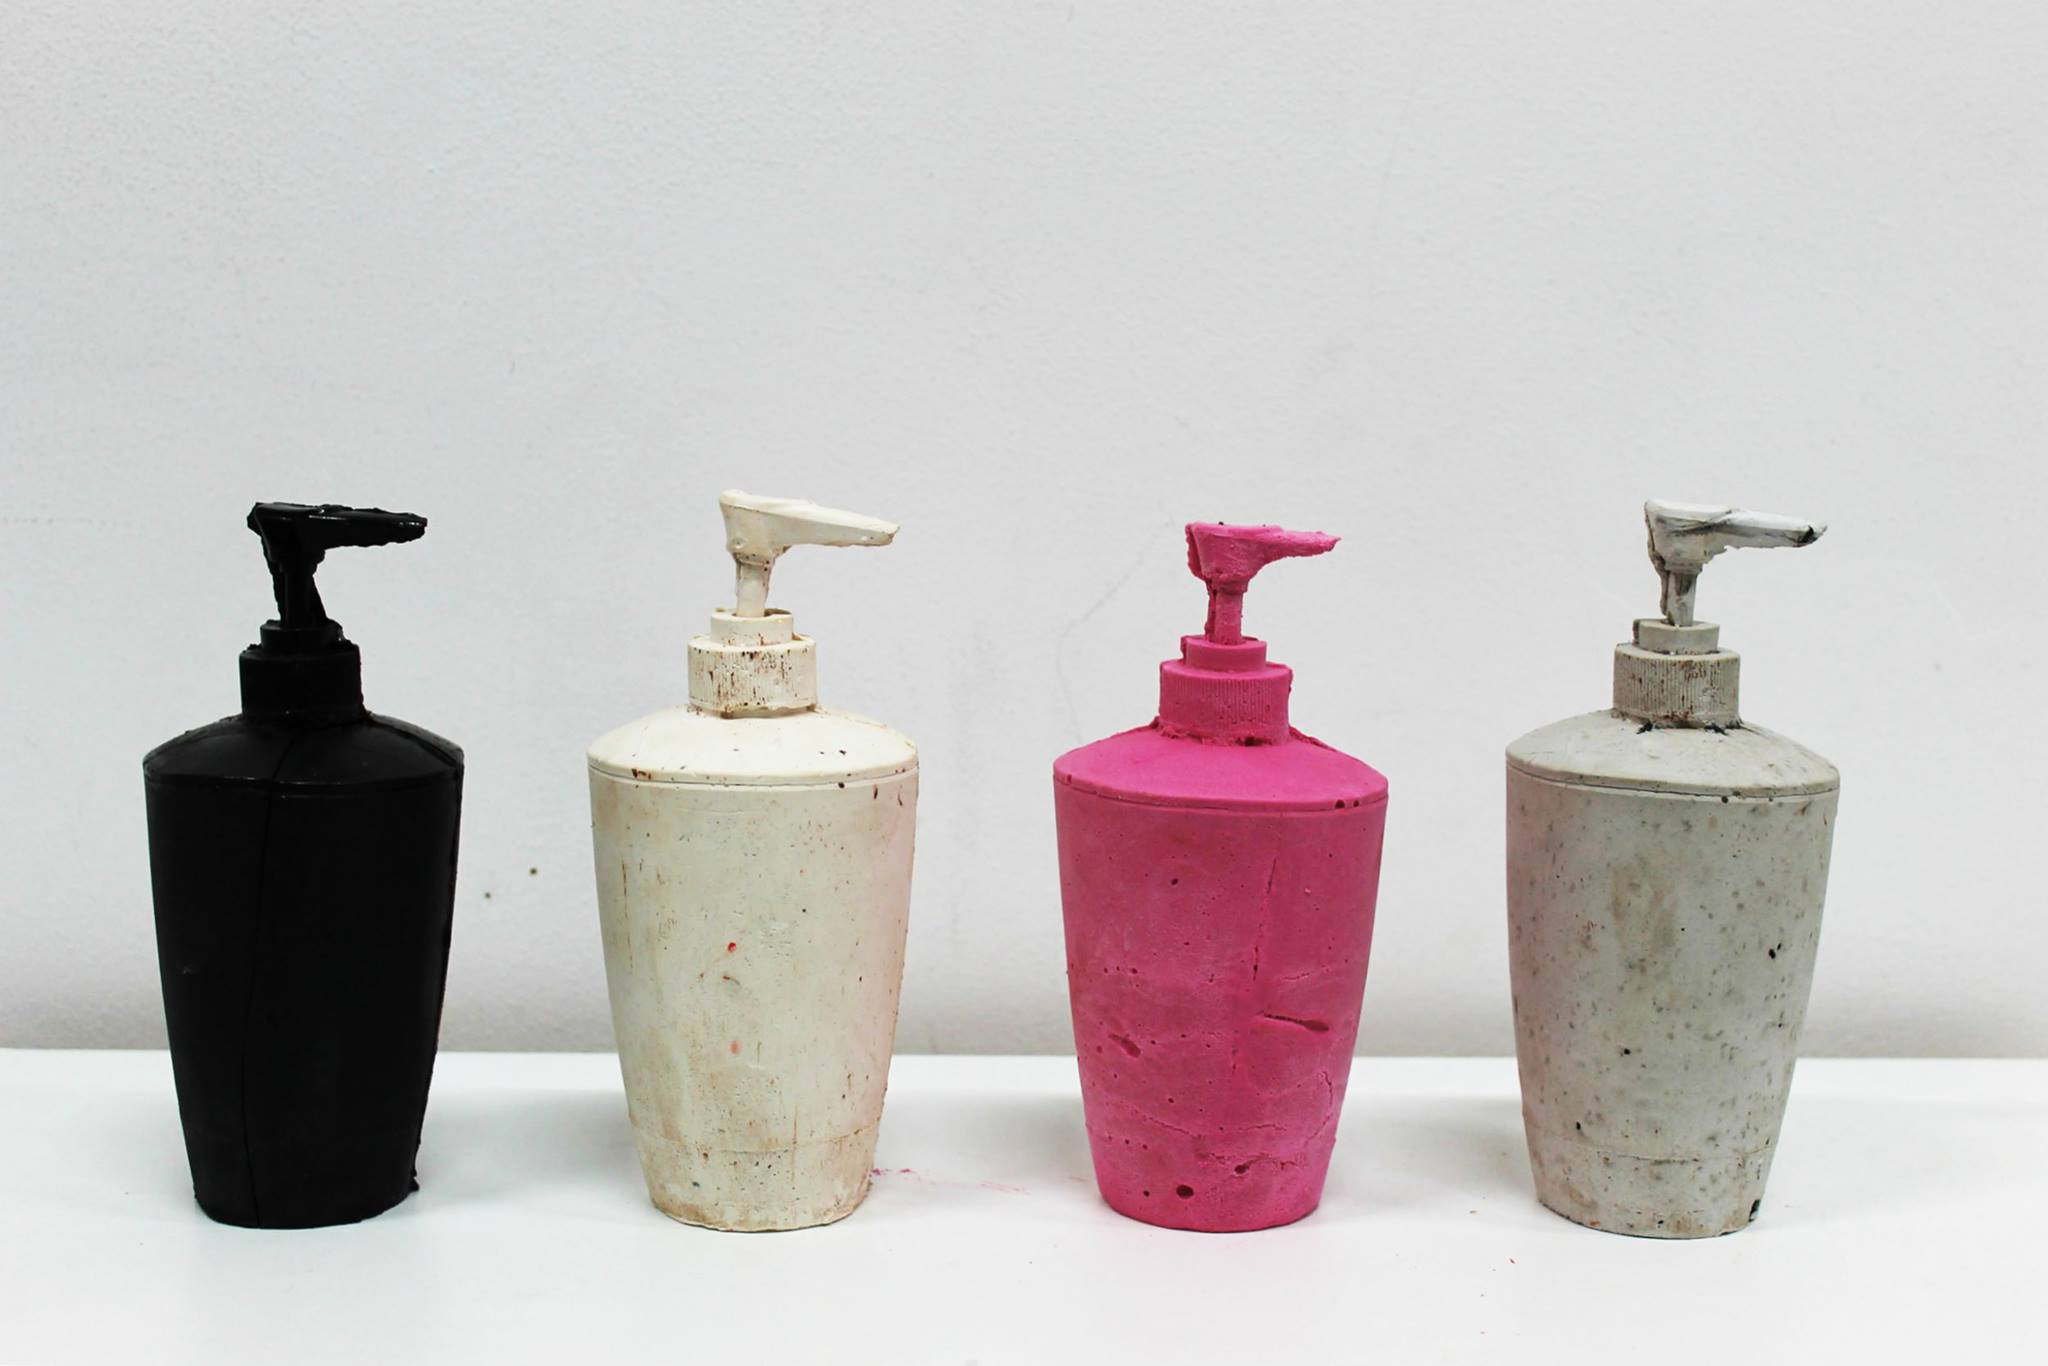 Evdokia Georgiou, Soap Dispensers, 2015